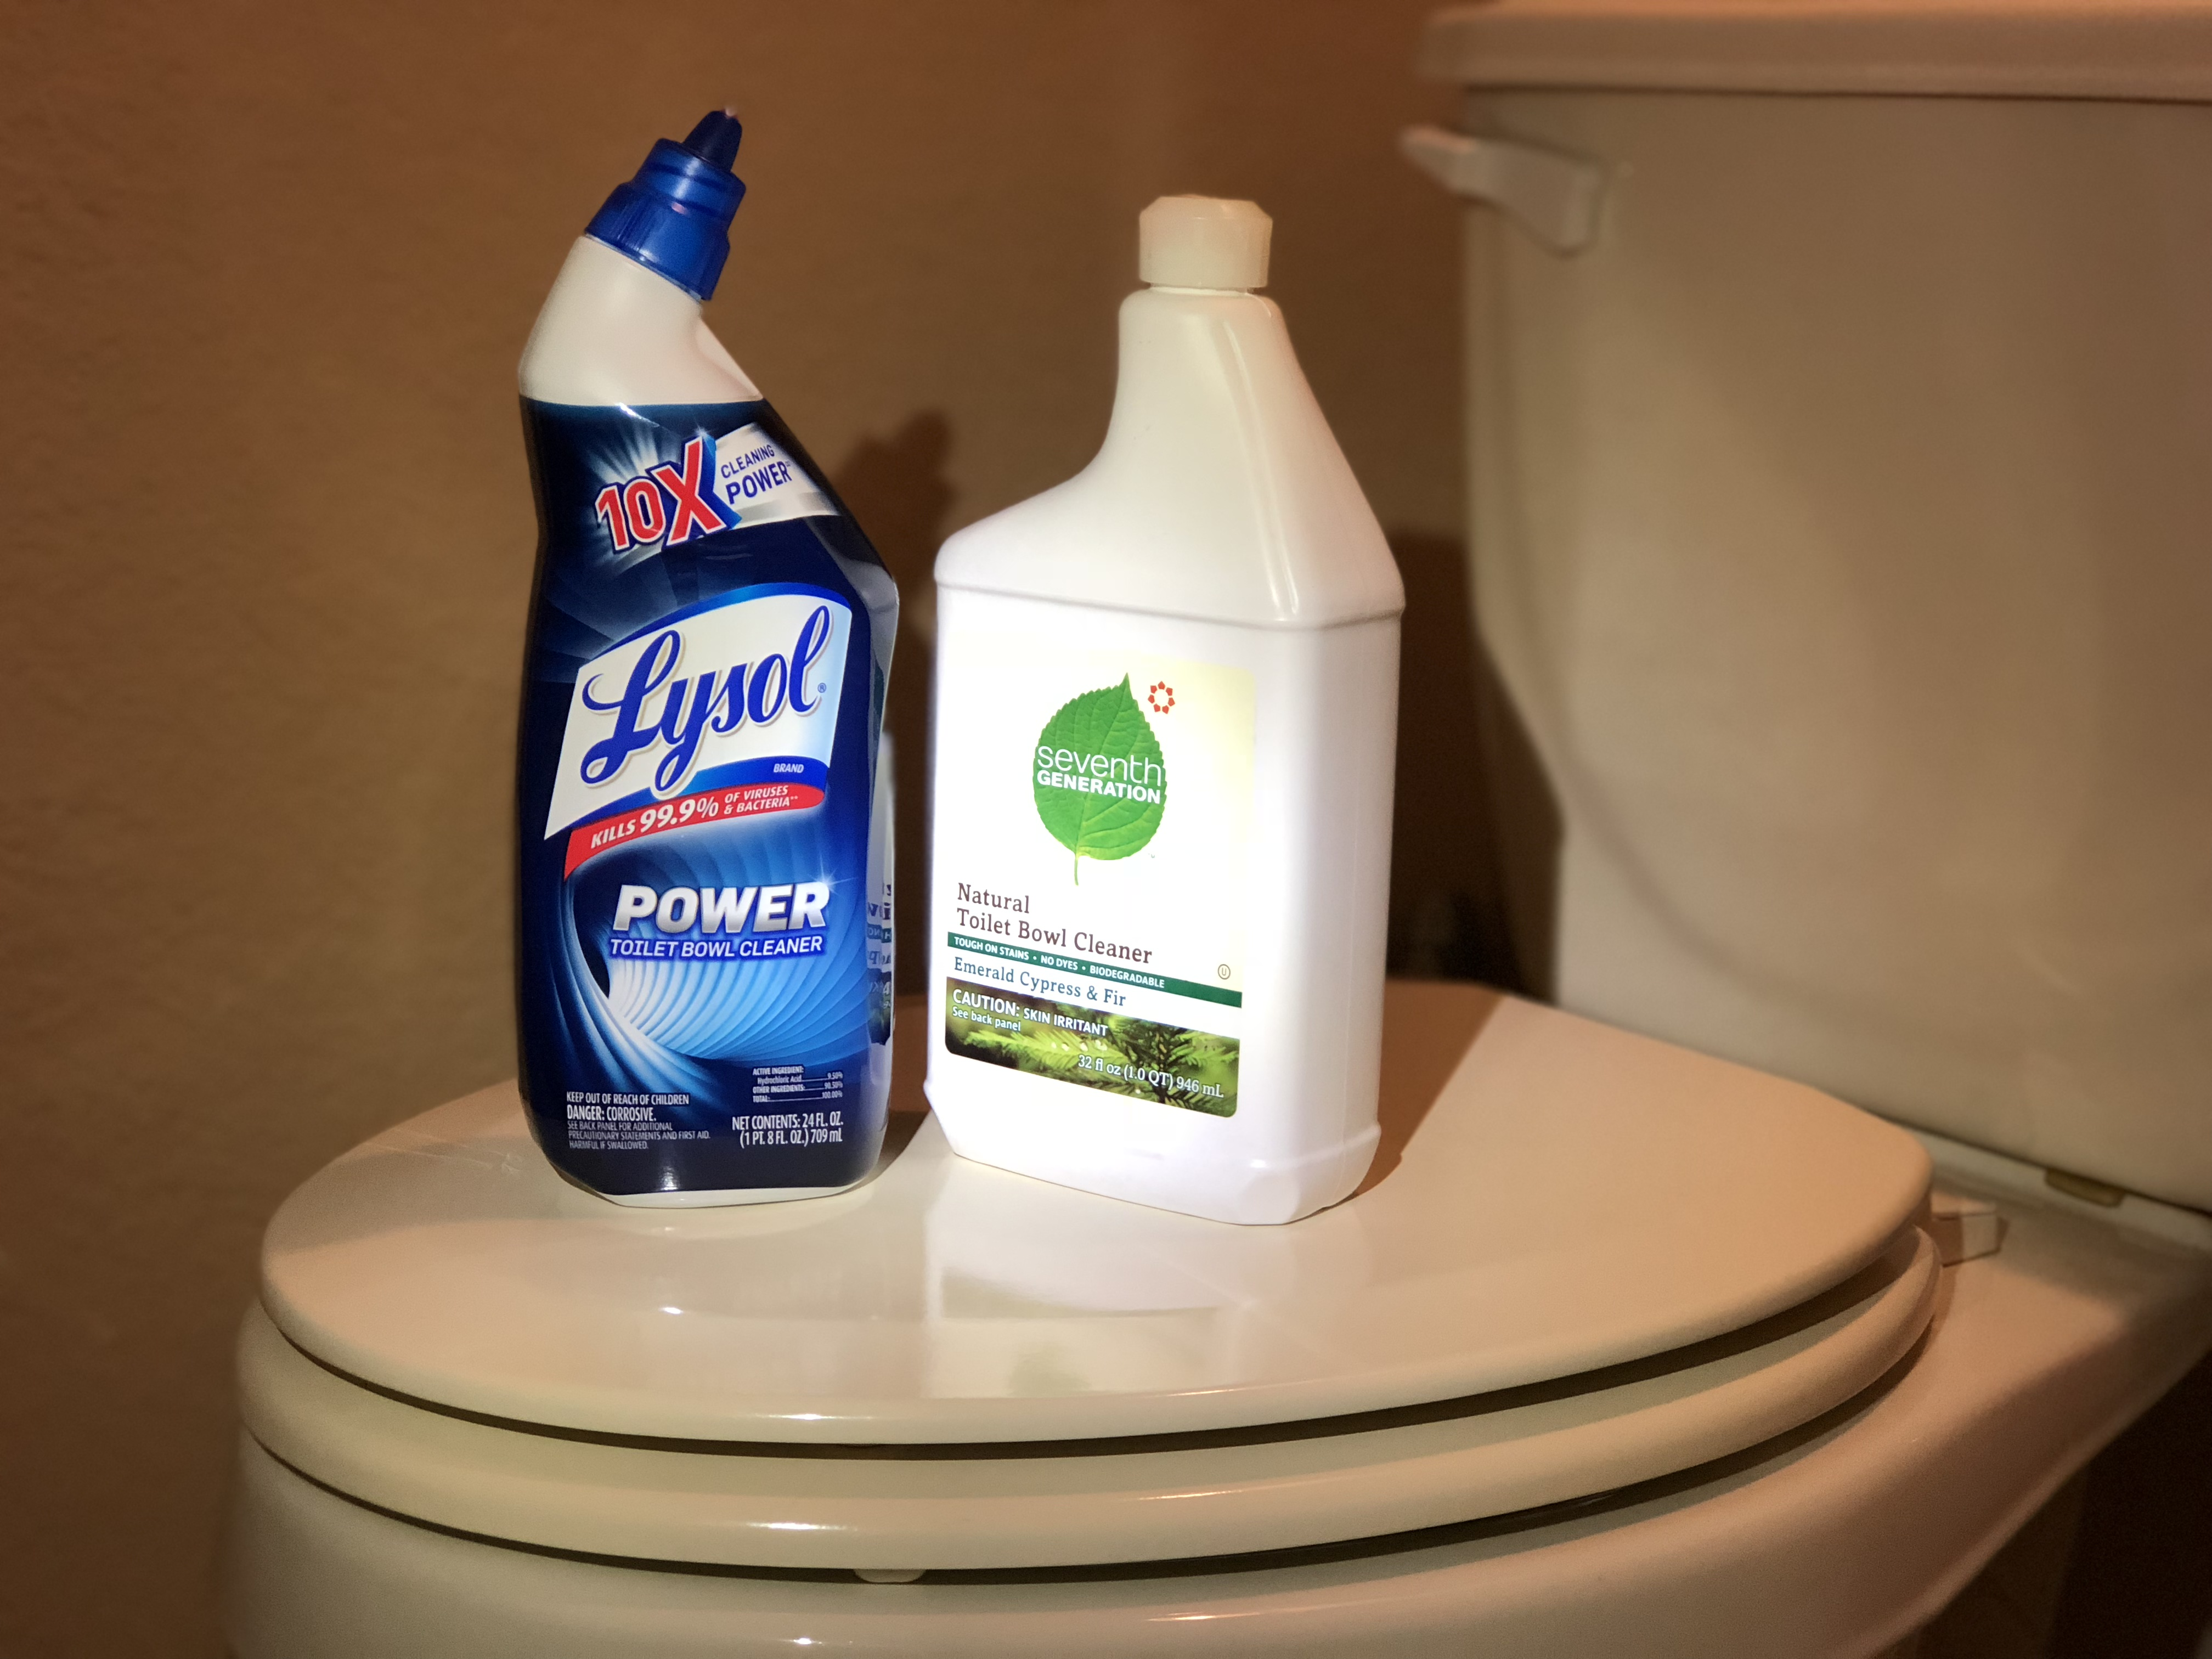 green natural eco-friendly cleaning products – Toilet Bowl Cleaners – Lysol versus Seventh Generation